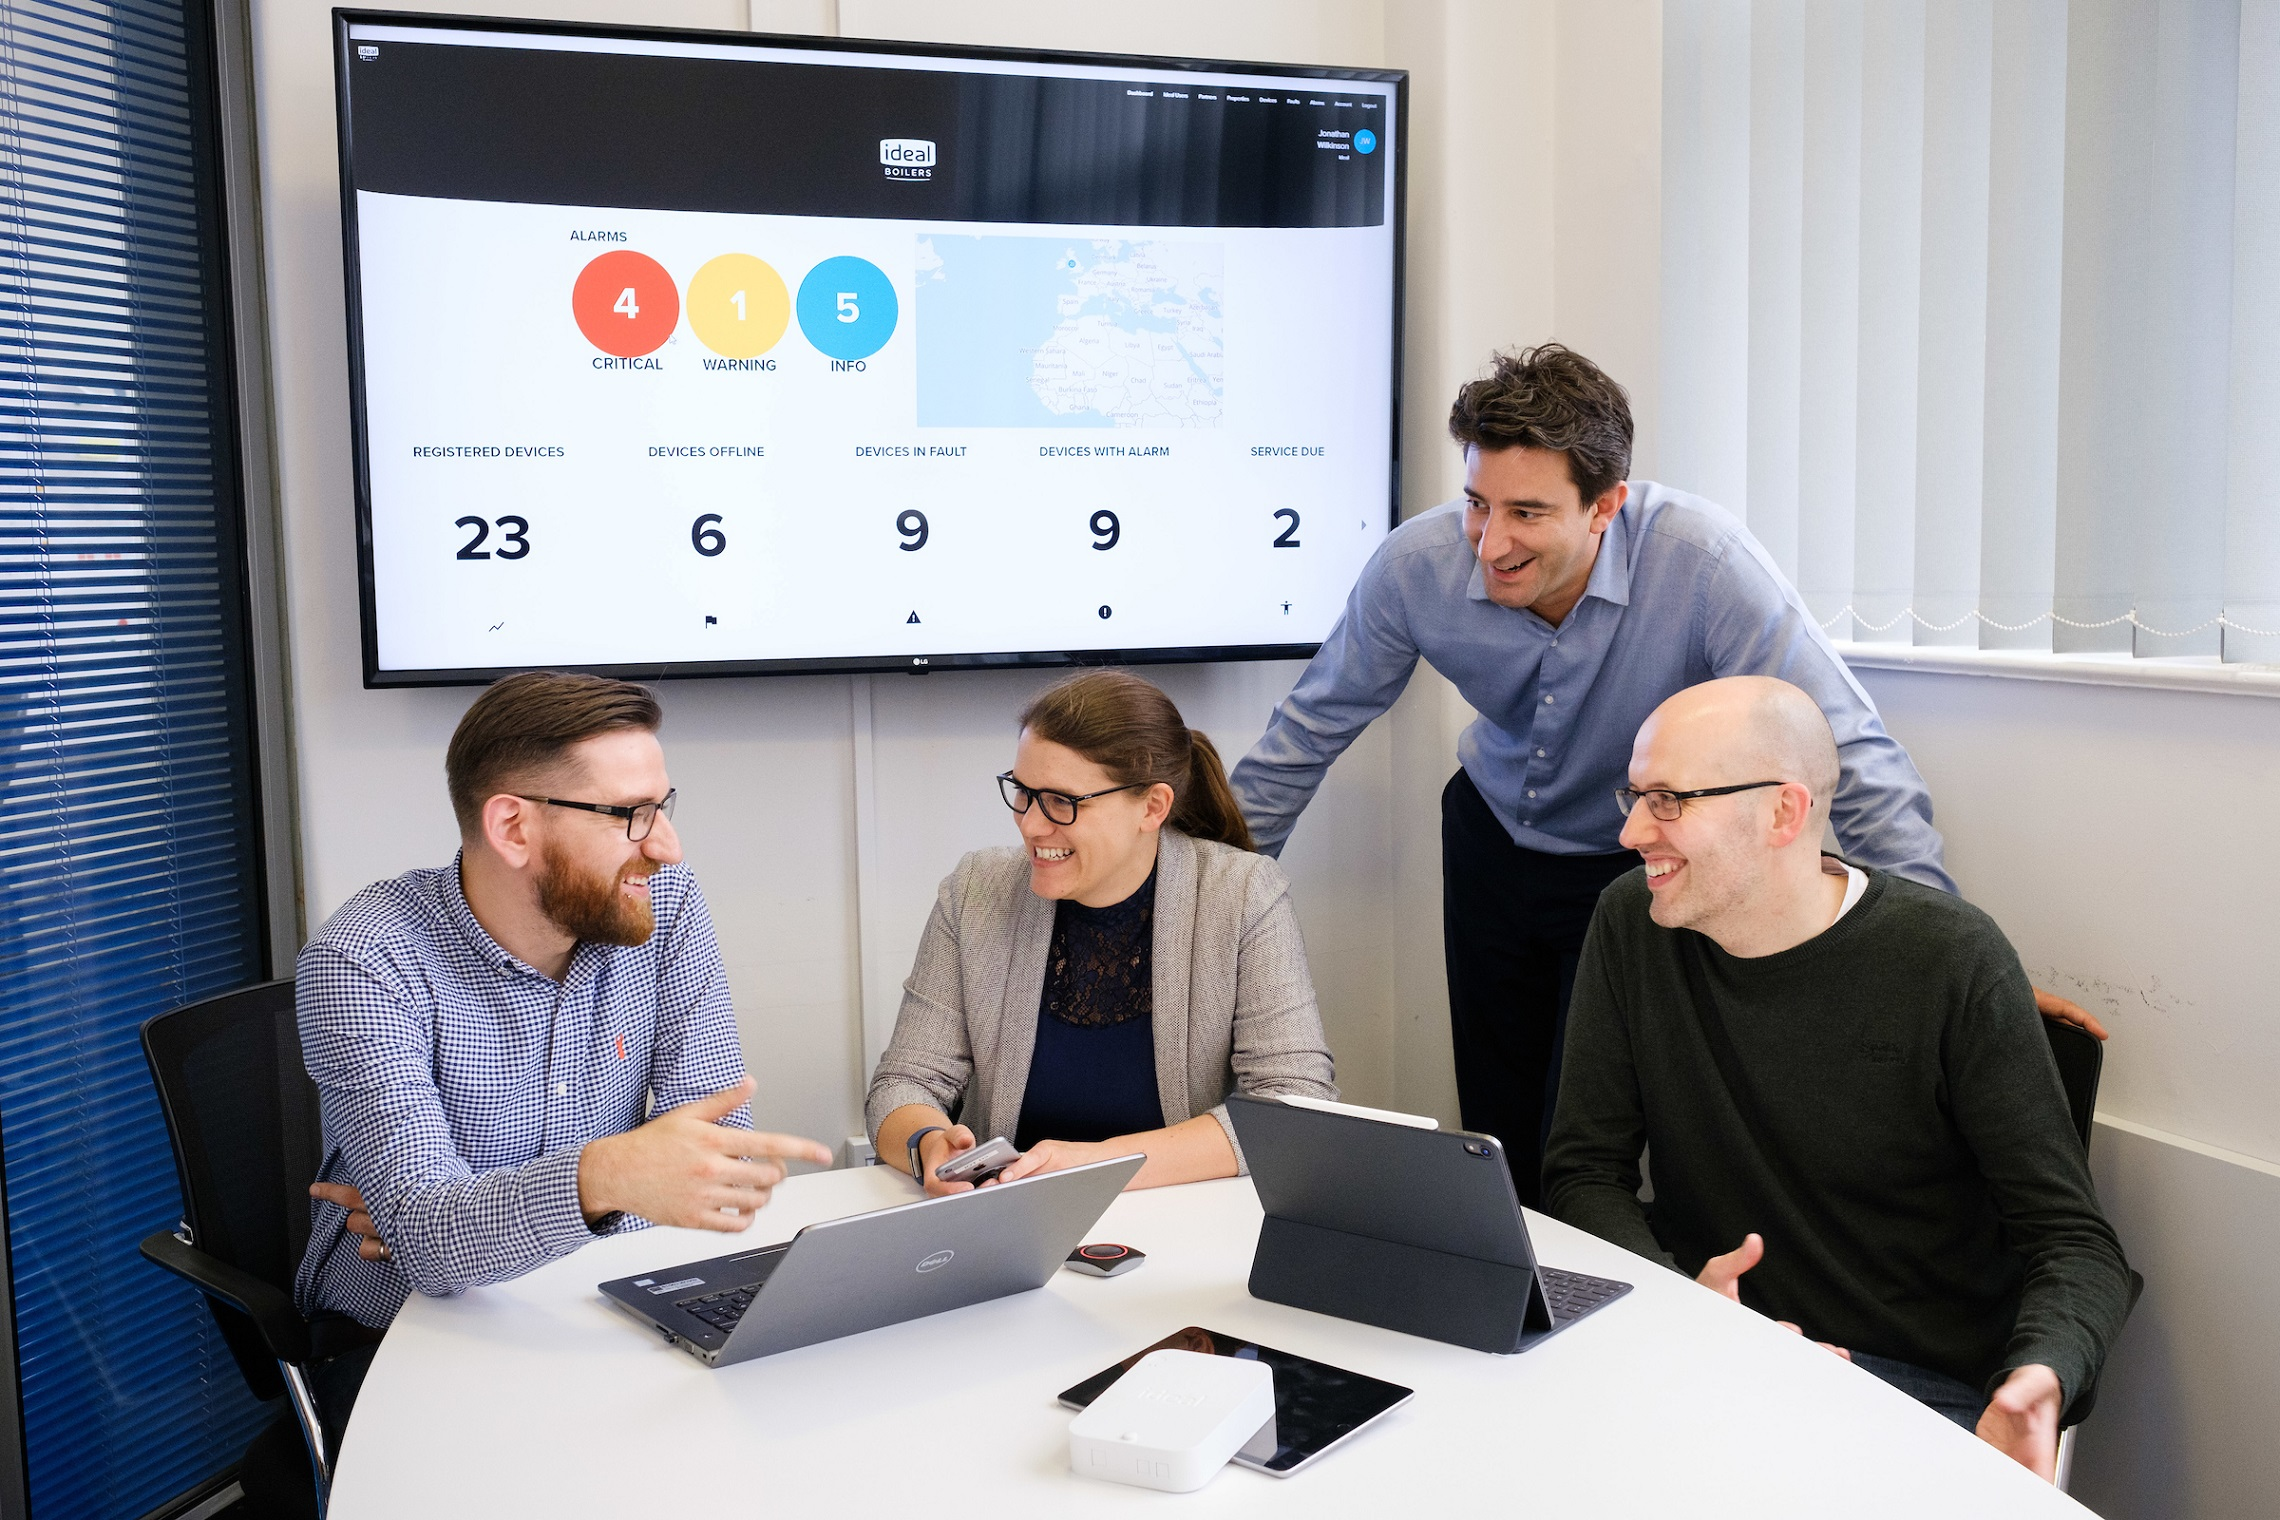 We've worked with Ideal Boilers to develop a smart heating system using Internet of Things (IoT) technologies. Our Matt Weldon, left, and John Polling, right, are pictured at Ideal's Hull site with Lizzie Wilkinson, Head of Domestic Product Management, Groupe Atlantic UK, and Jonathan Wilkinson, Head of IoT for Groupe Atlantic UK.